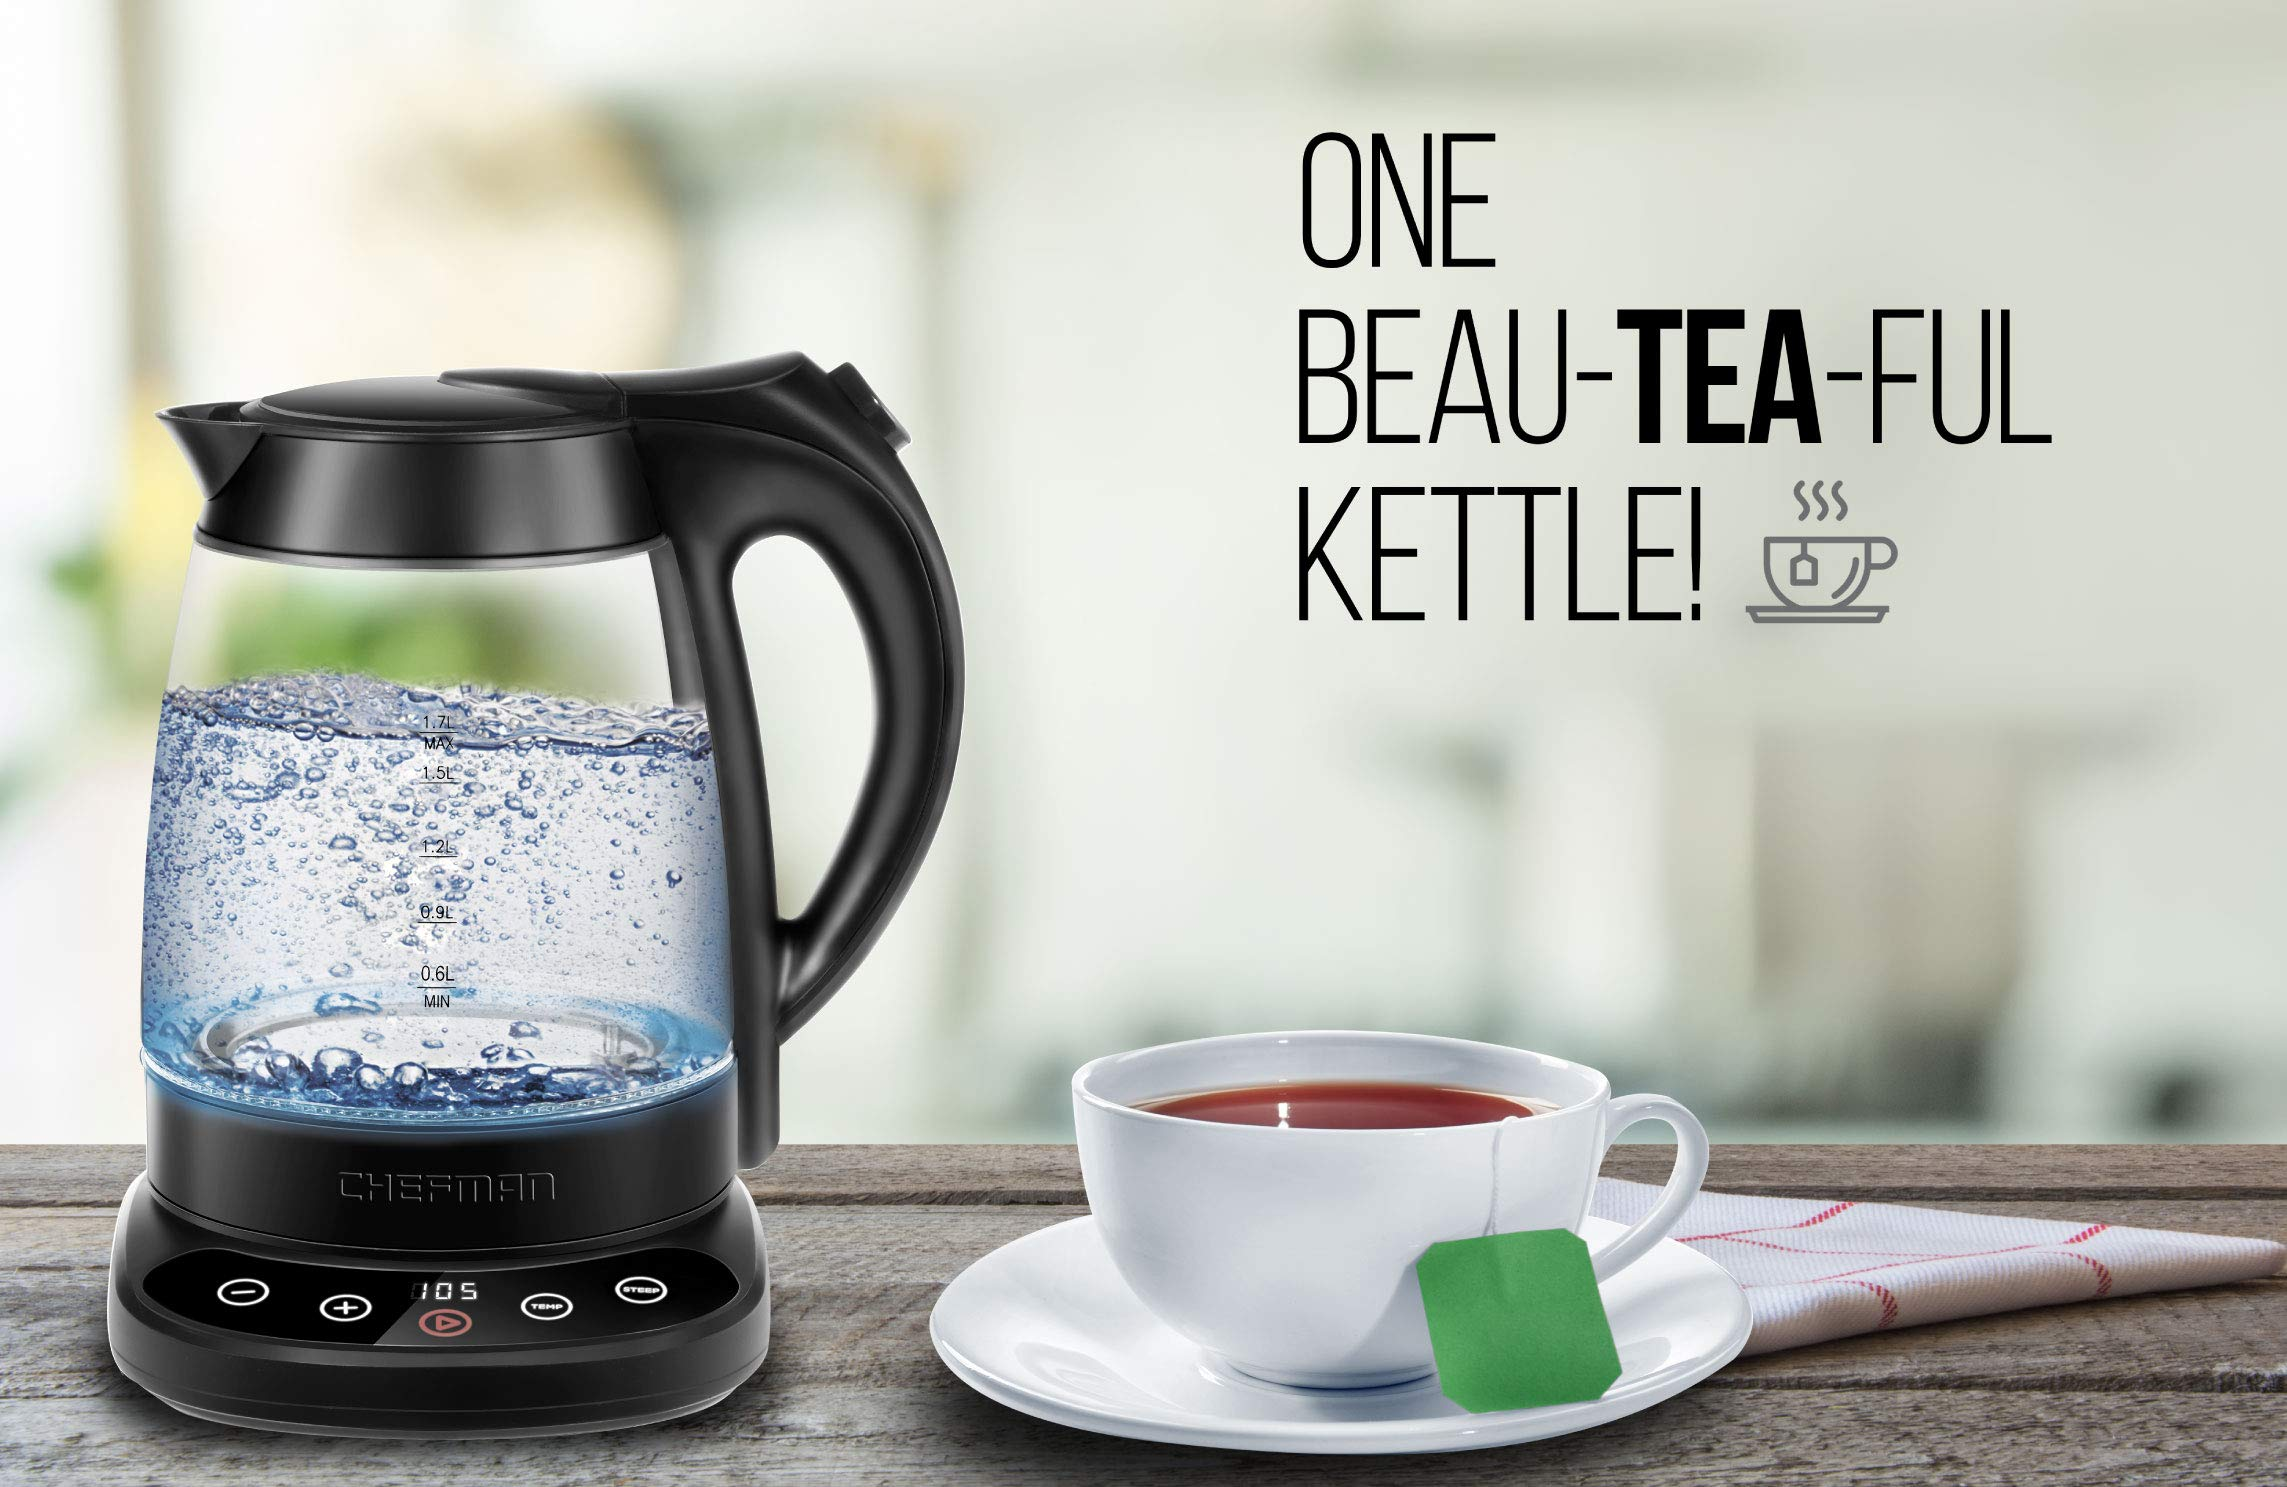 Chefman Programmable Electric Kettle Digital Display Removable Tea Infuser Included, Cool Touch Handle, 360° Swivel Base, BPA Free, 1.7 Liter/1.8 Quart by Chefman (Image #5)